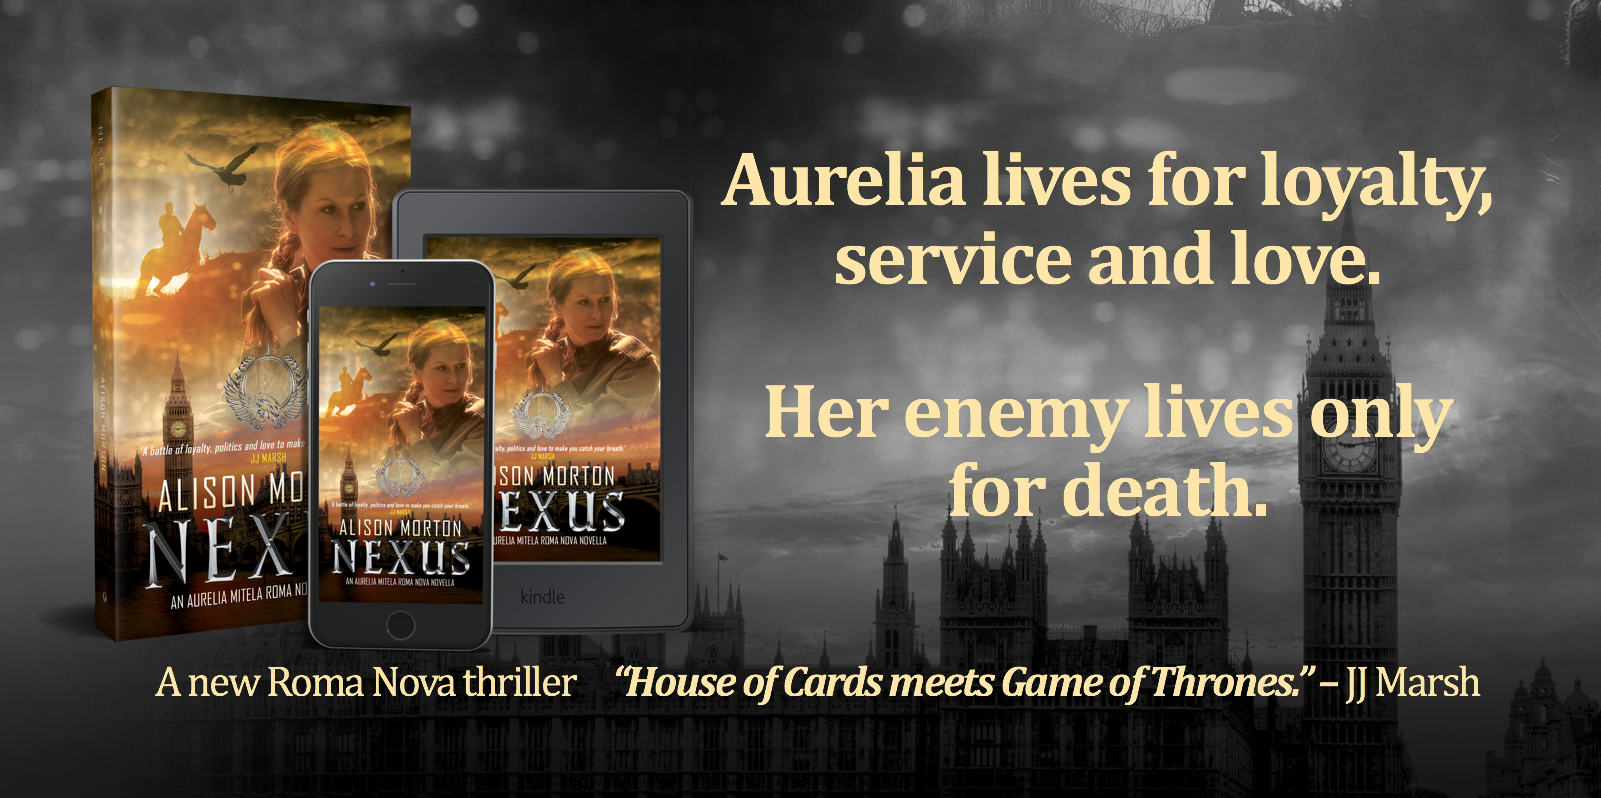 NEXUS – The first chapter…